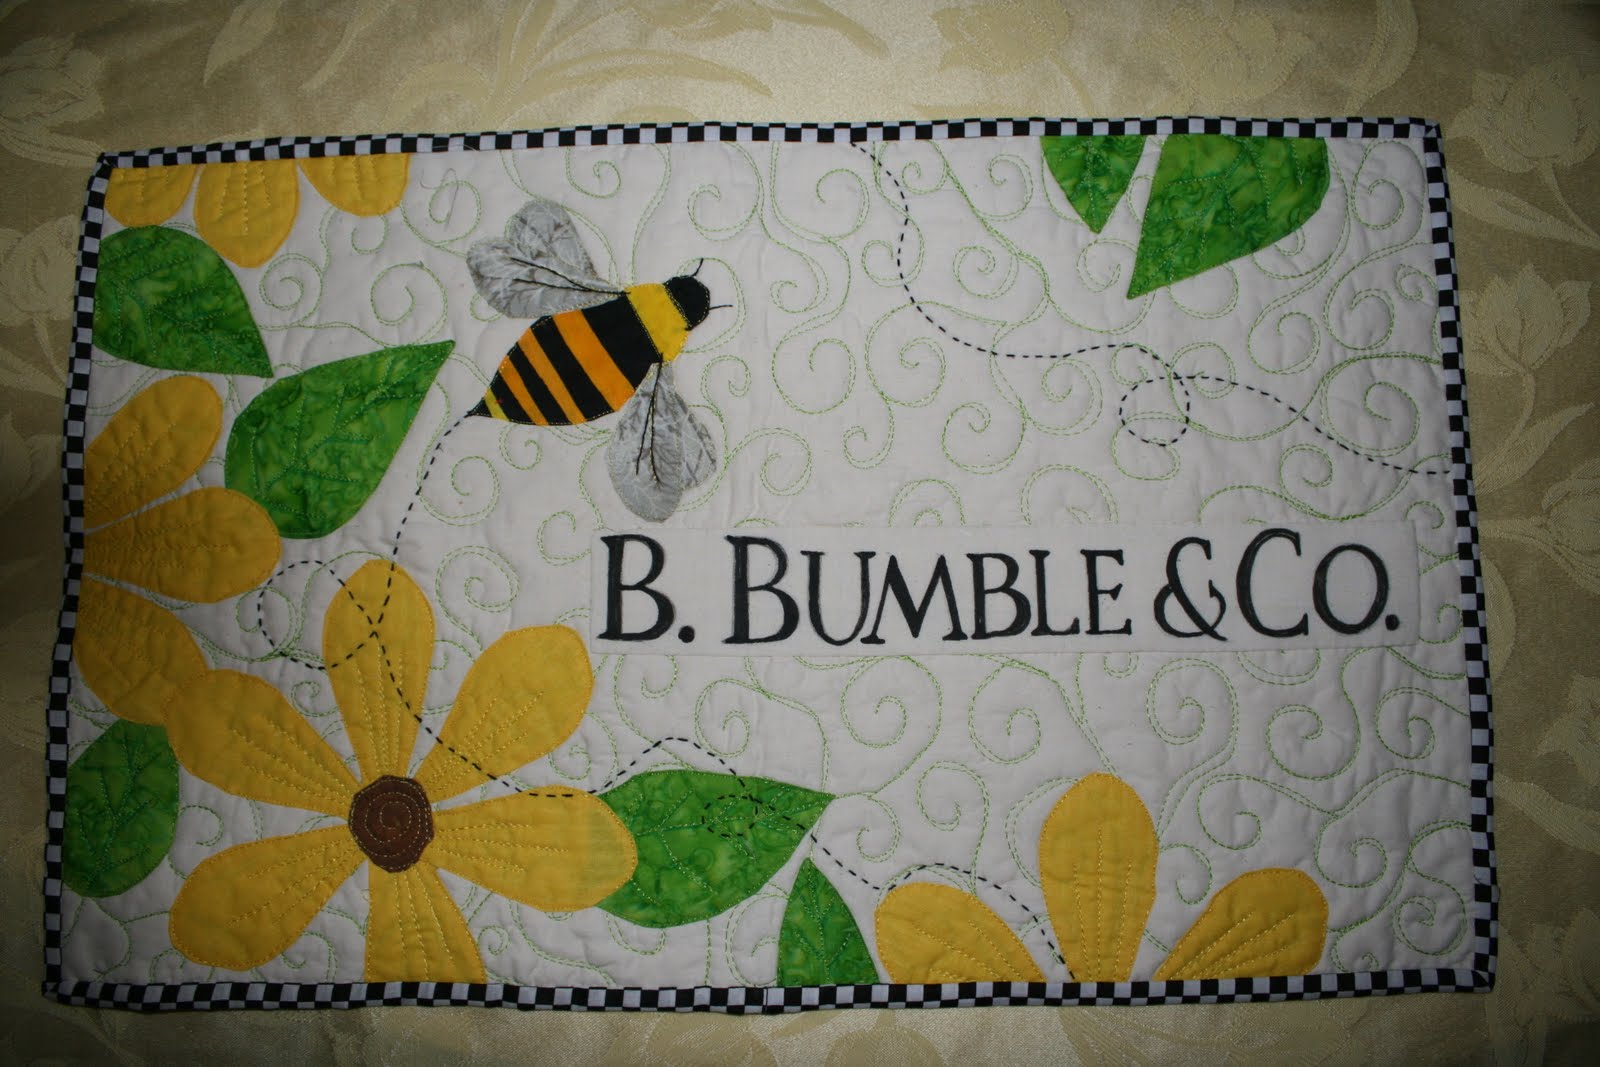 Buzzing and Bumbling: Name Tags, Business Cards, and Quilts